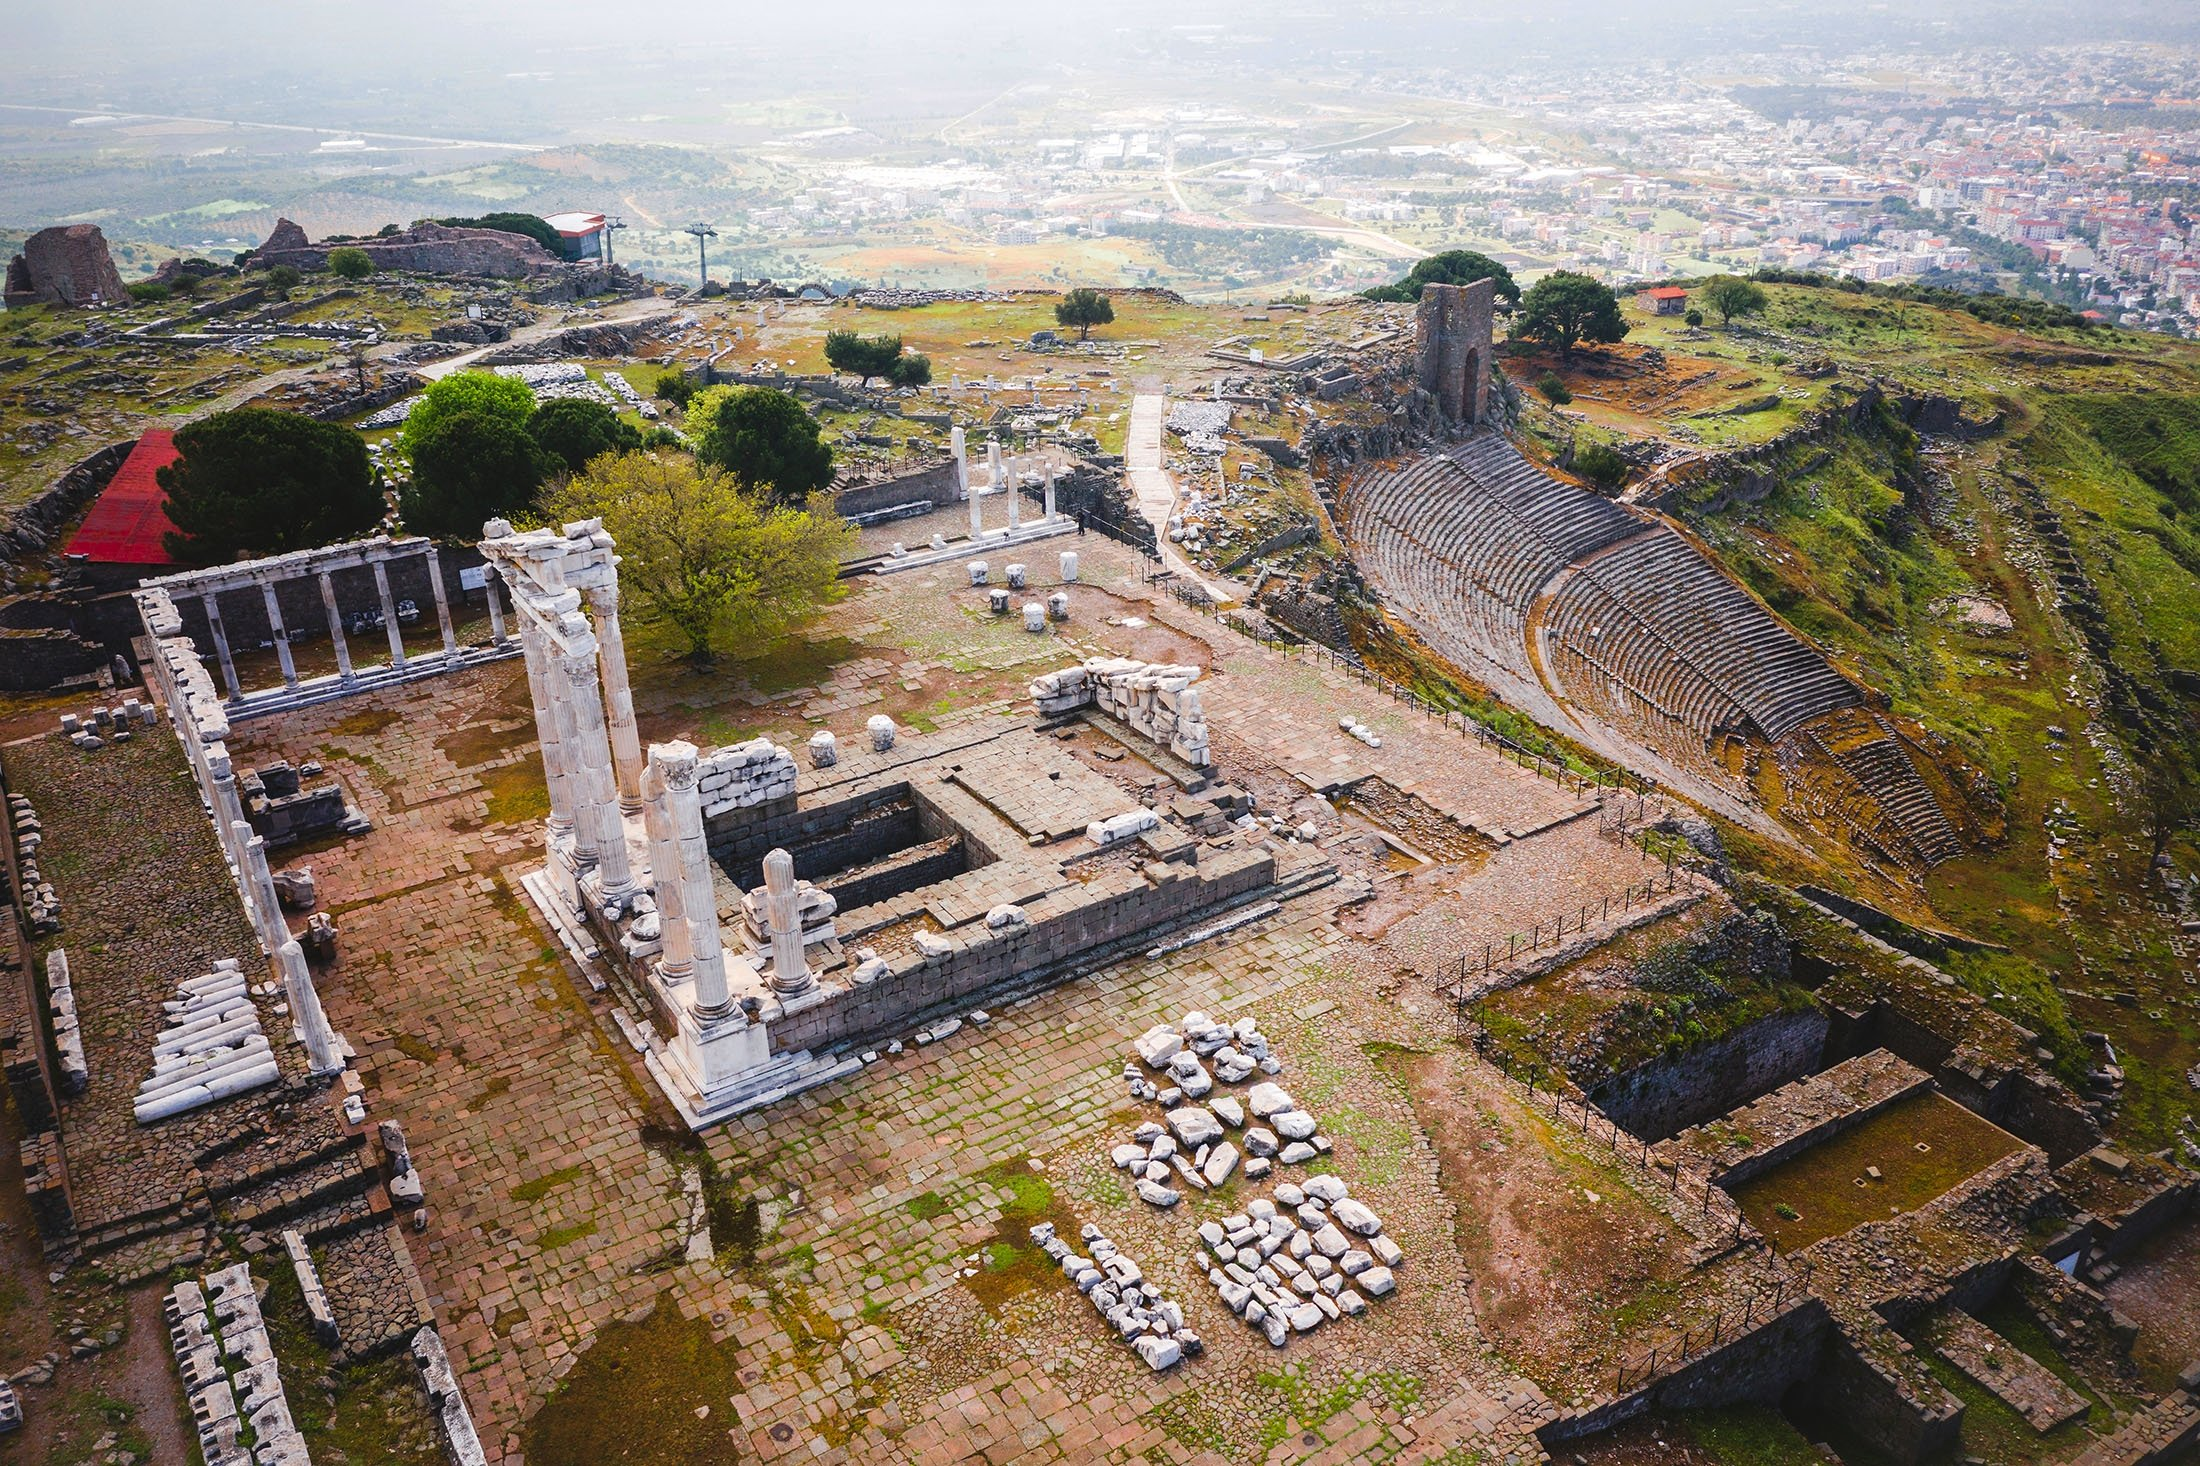 The Acropolis houses some of the most important remains of Pergamon. (Shutterstock Photo)